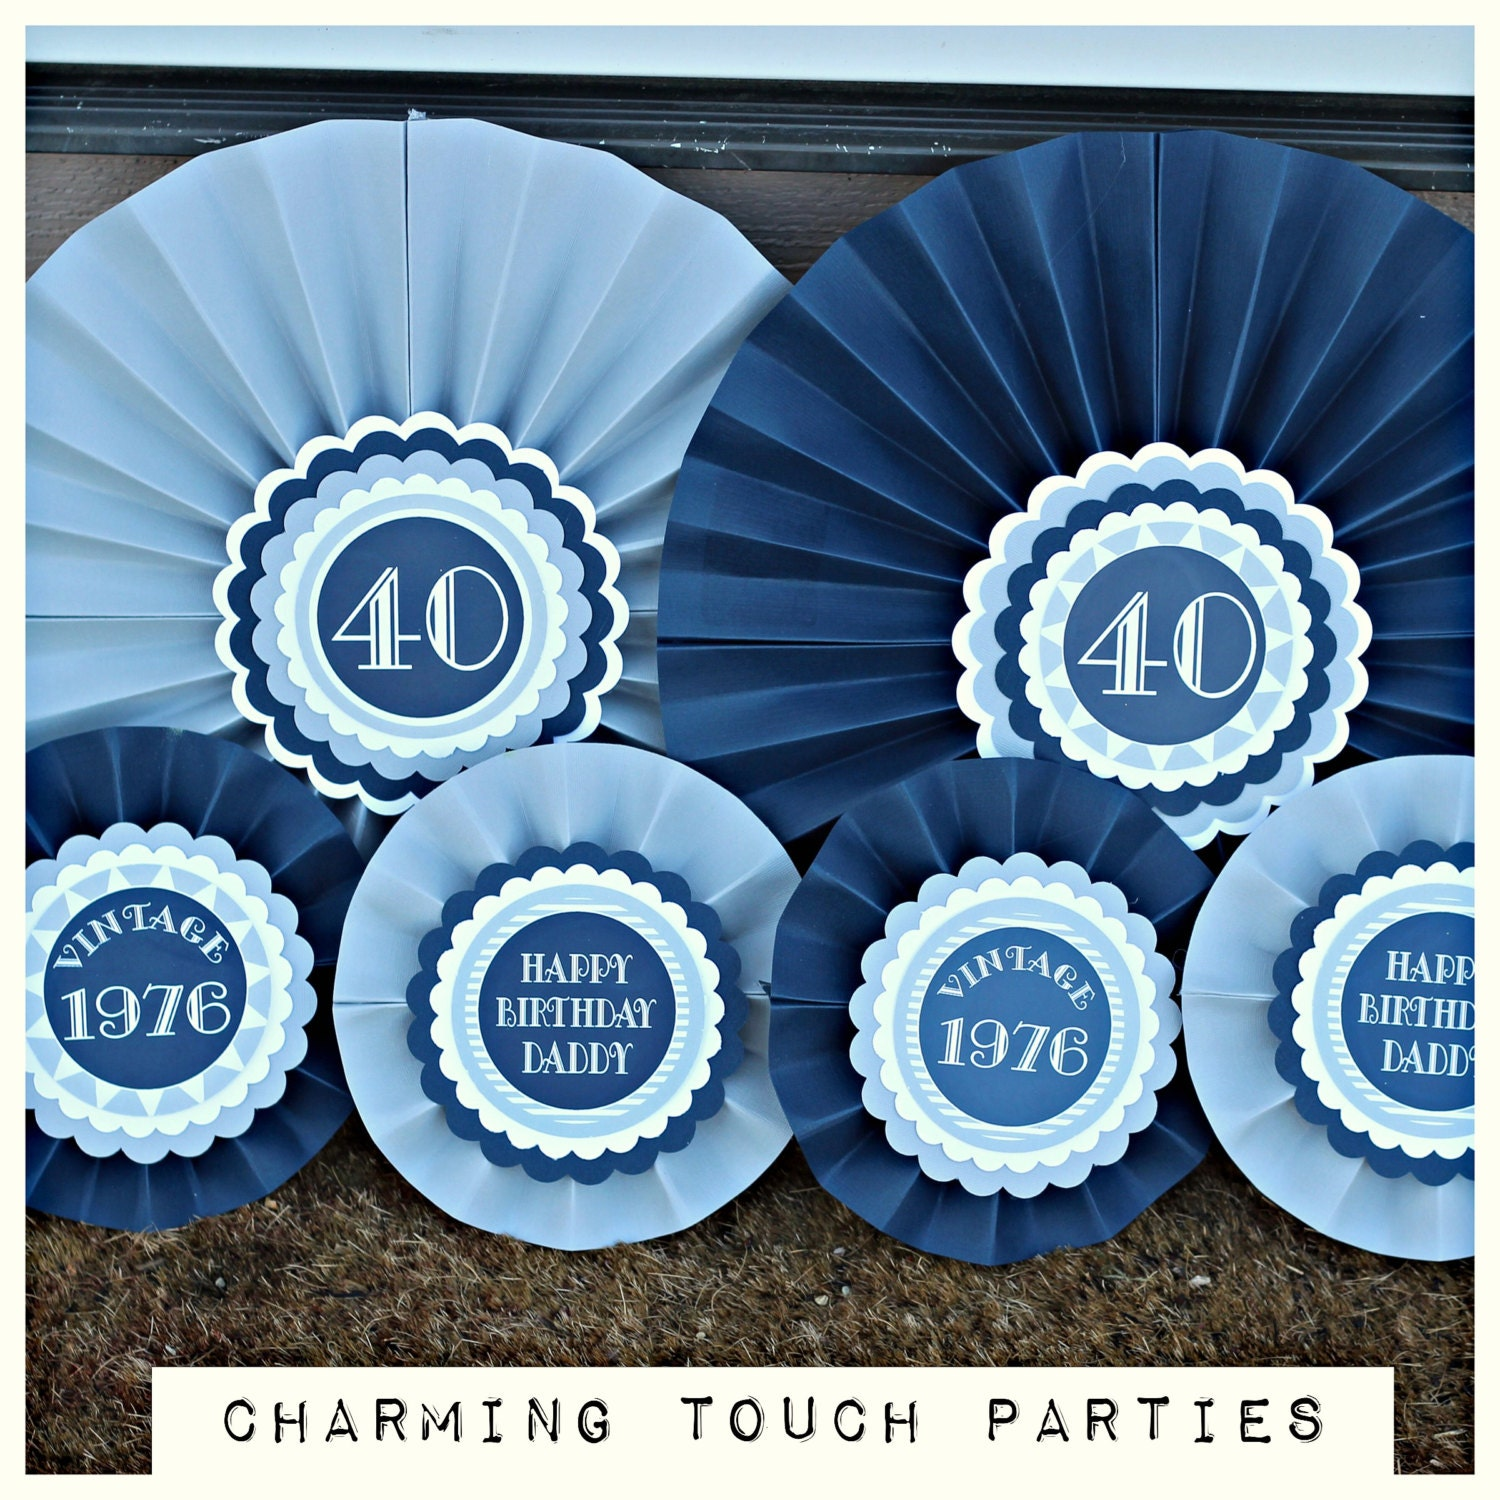 40th birthday party decorations decorative rosettes paper for 40th birthday party decoration